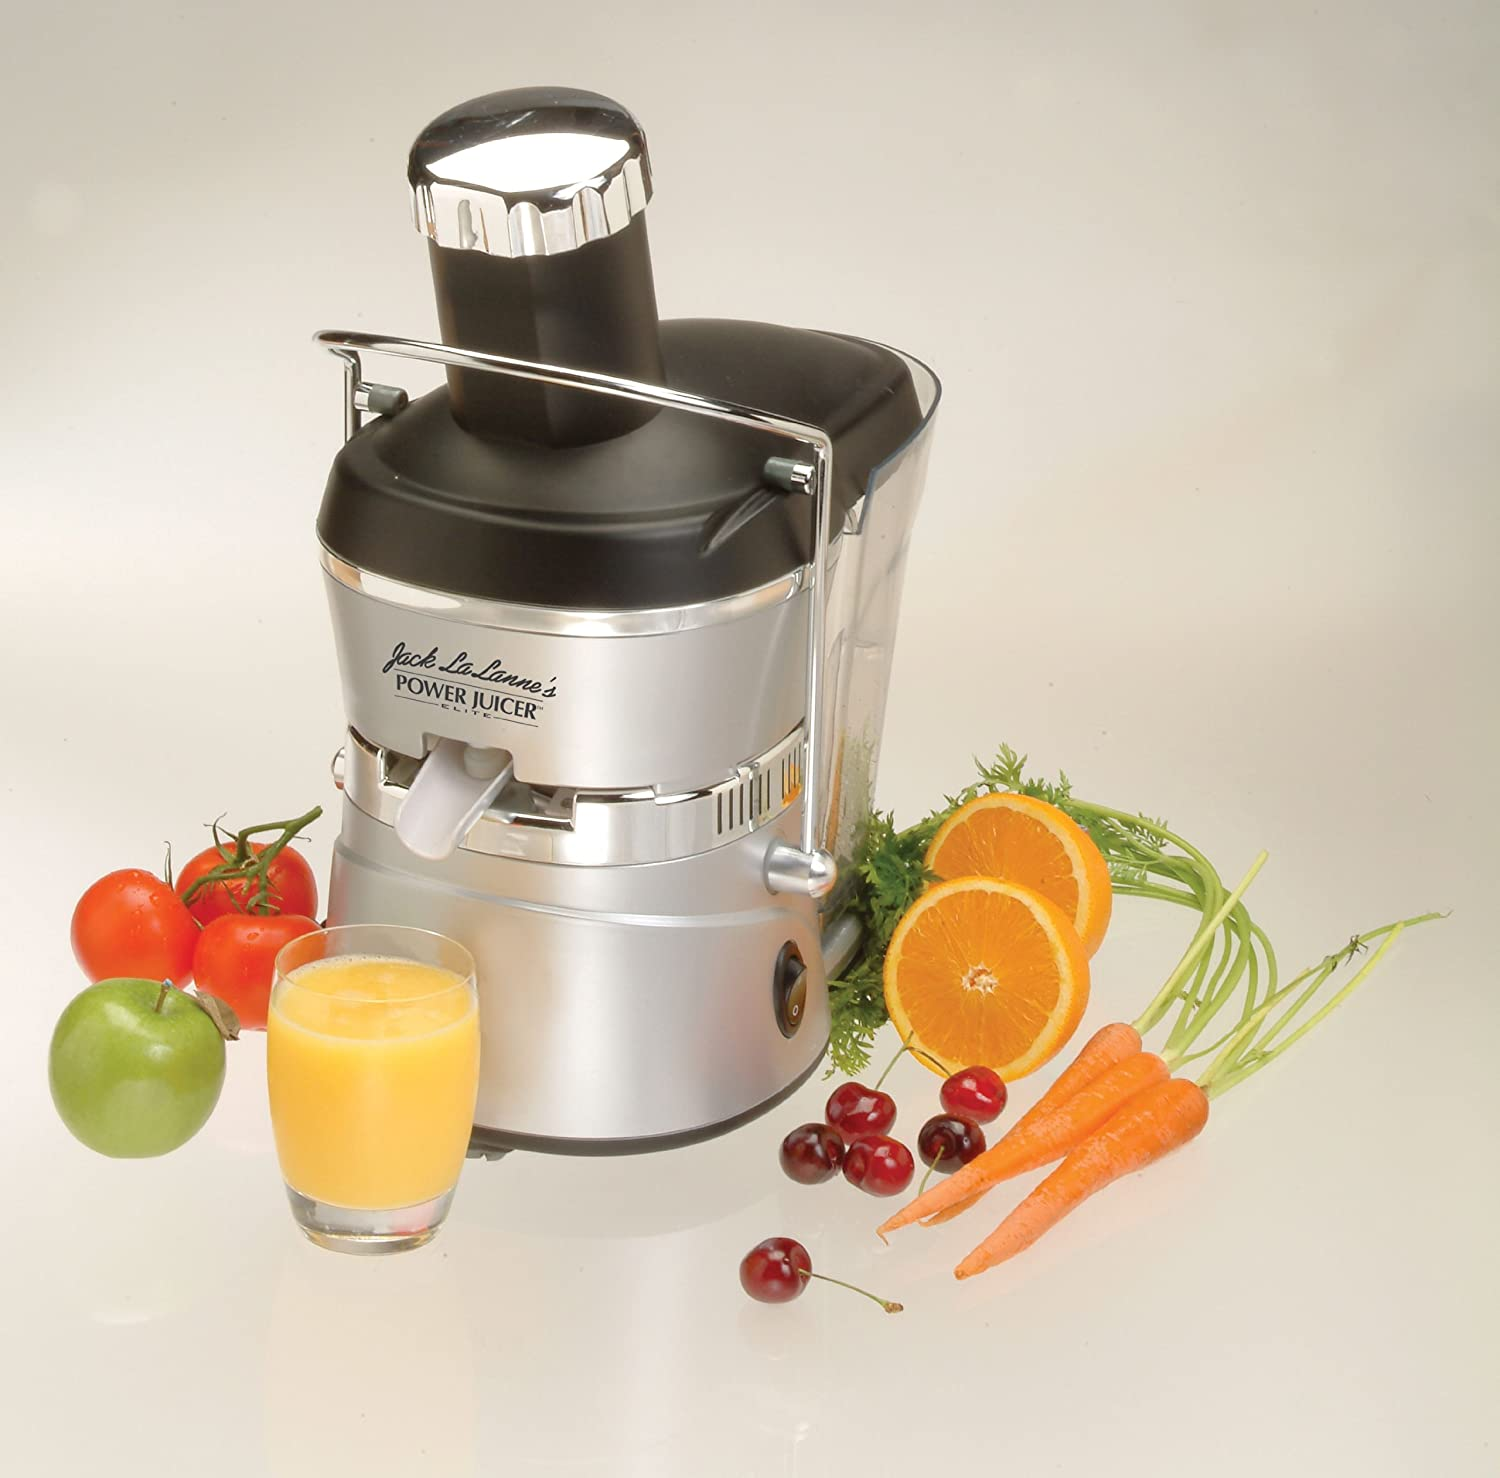 jack lalanne power juicer kaufen